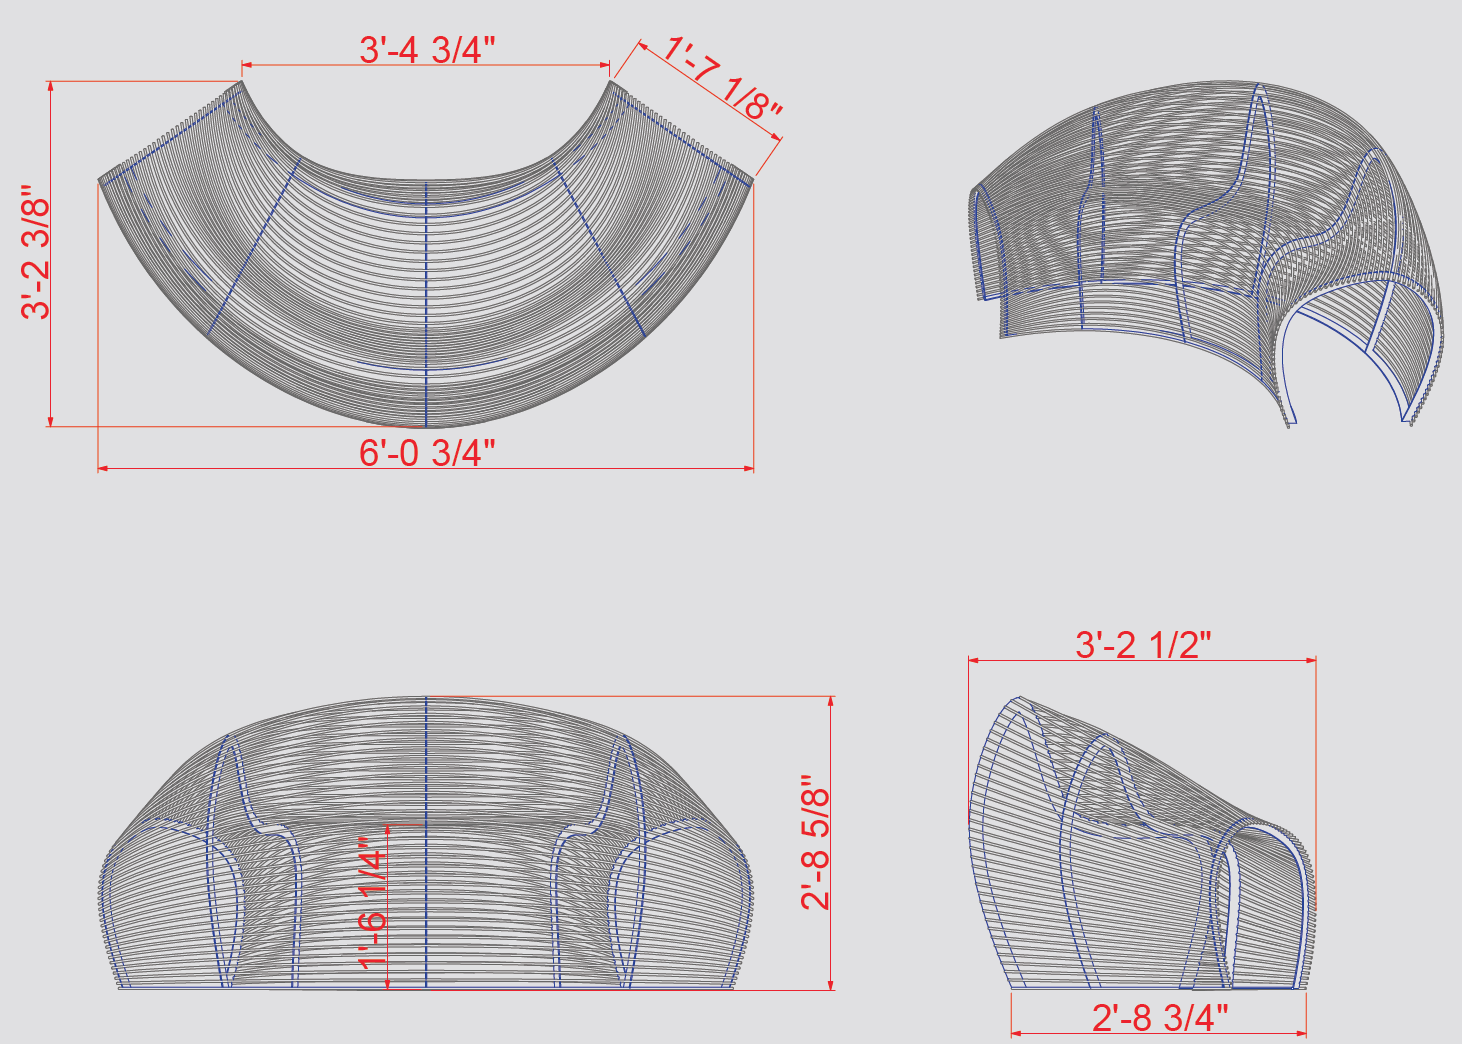 Parametric Lounger Dimensions